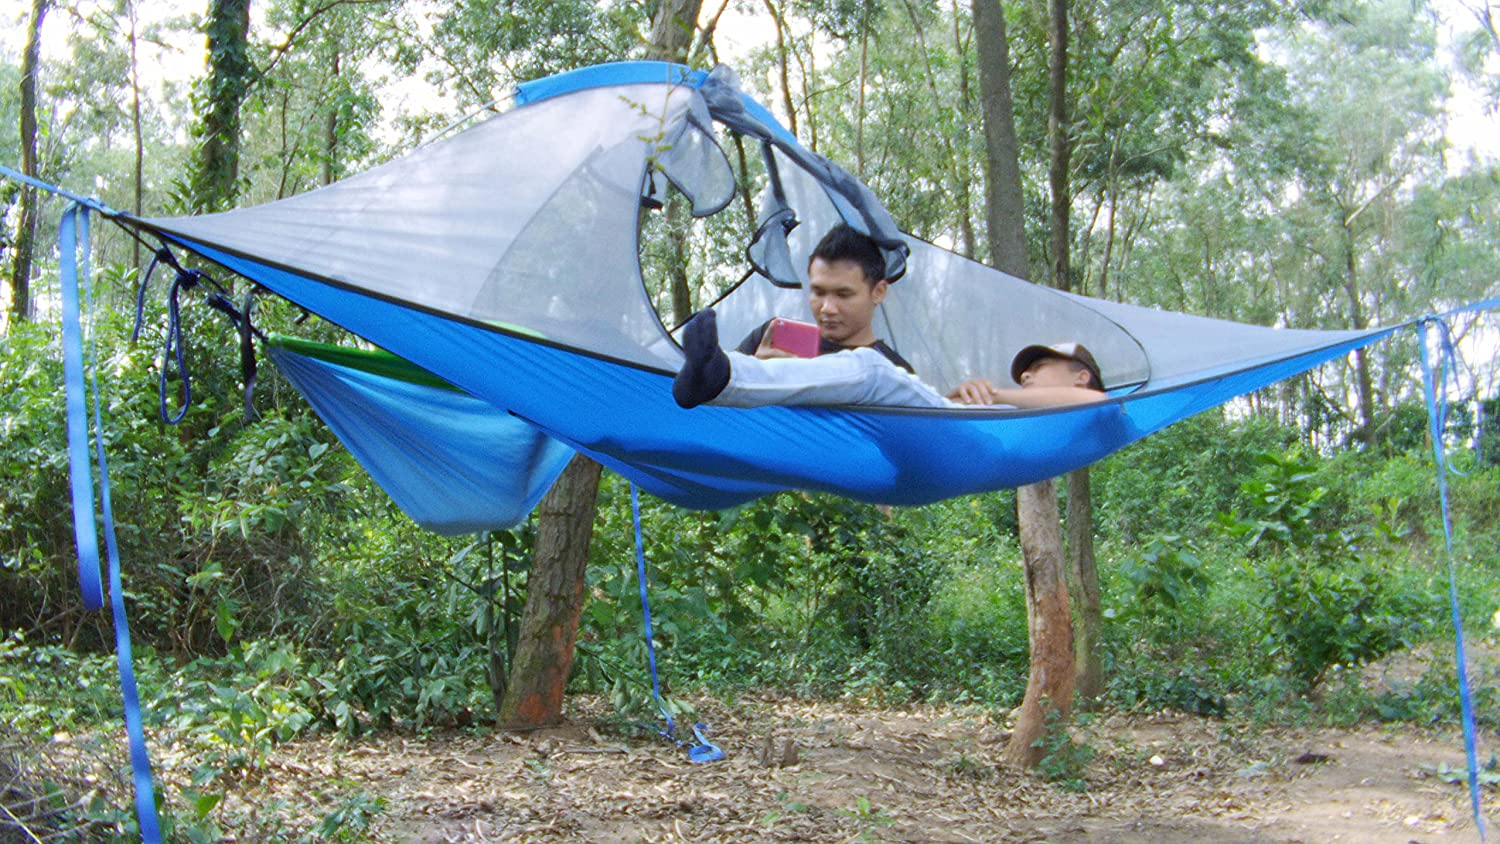 Skysurf Triangle Hanging Tree Tent Lightweight Backpacking 2 Person Tree Tent Triangle Double Hammock (blue) Amazon.ca Sports u0026 Outdoors & Skysurf Triangle Hanging Tree Tent Lightweight Backpacking 2 ...